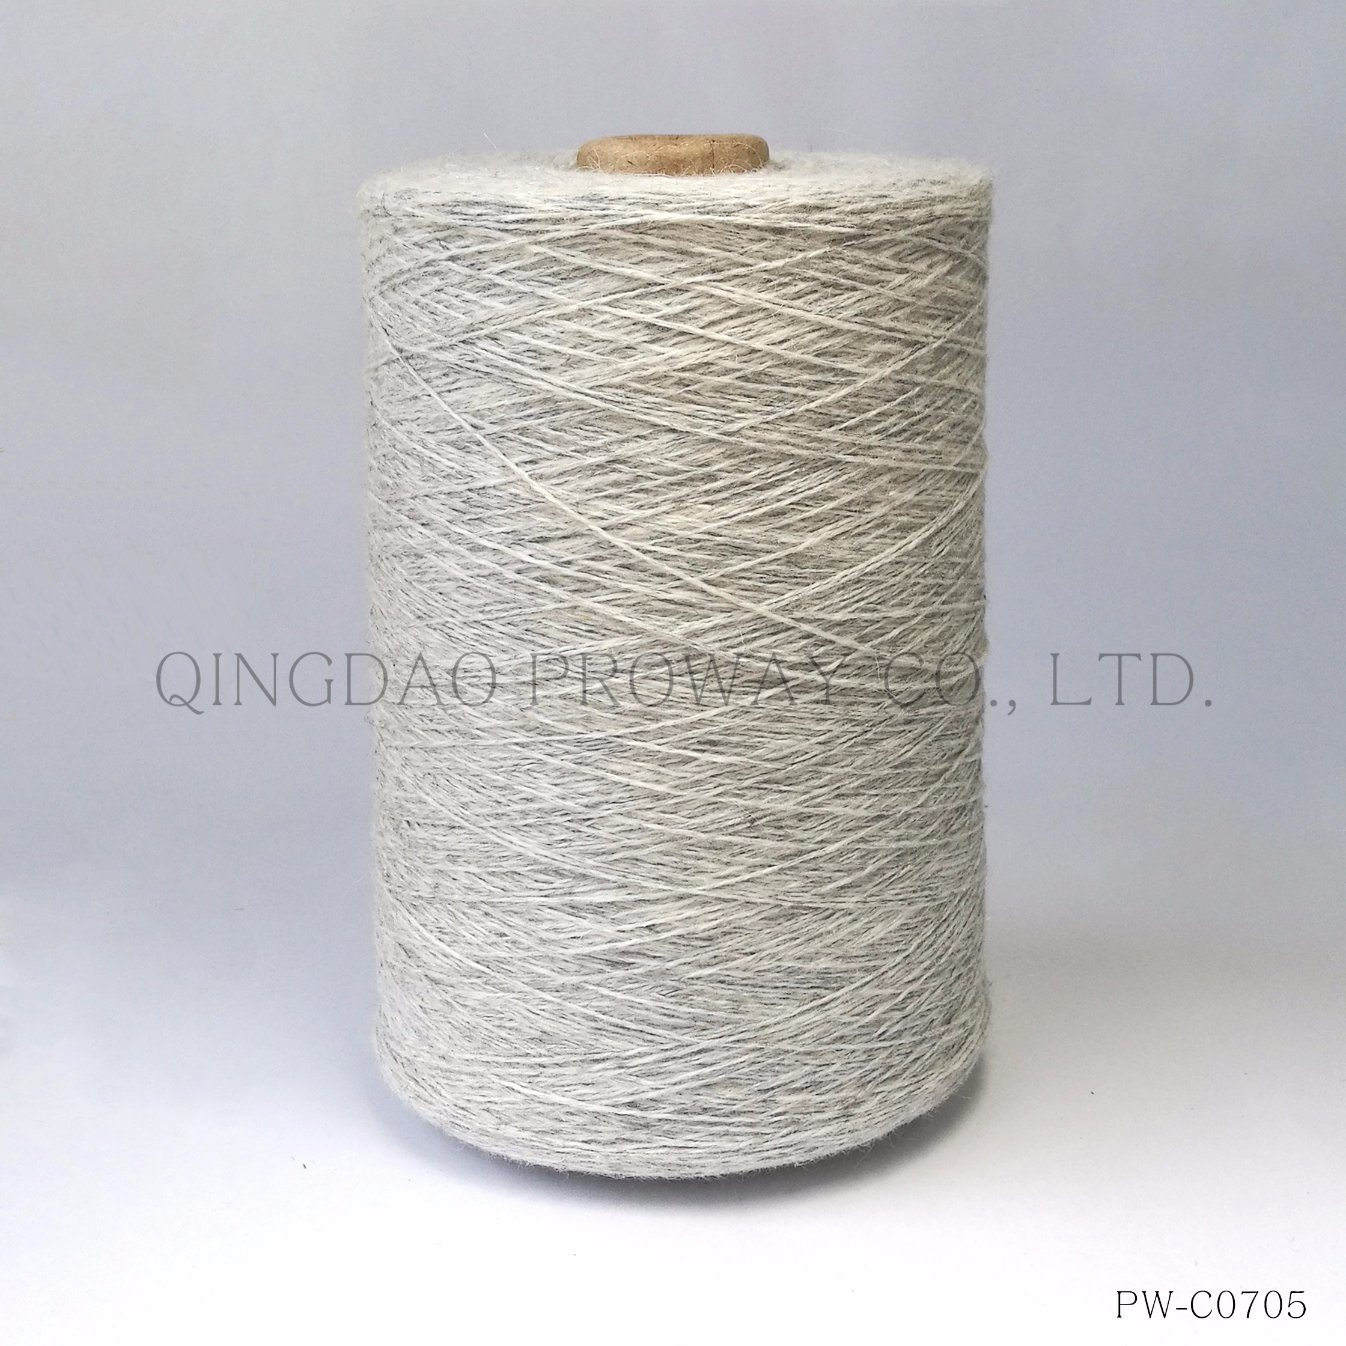 Melange Colored Woolen Yarn in Composition of Cotton/Nylon/Wool/Alpaca